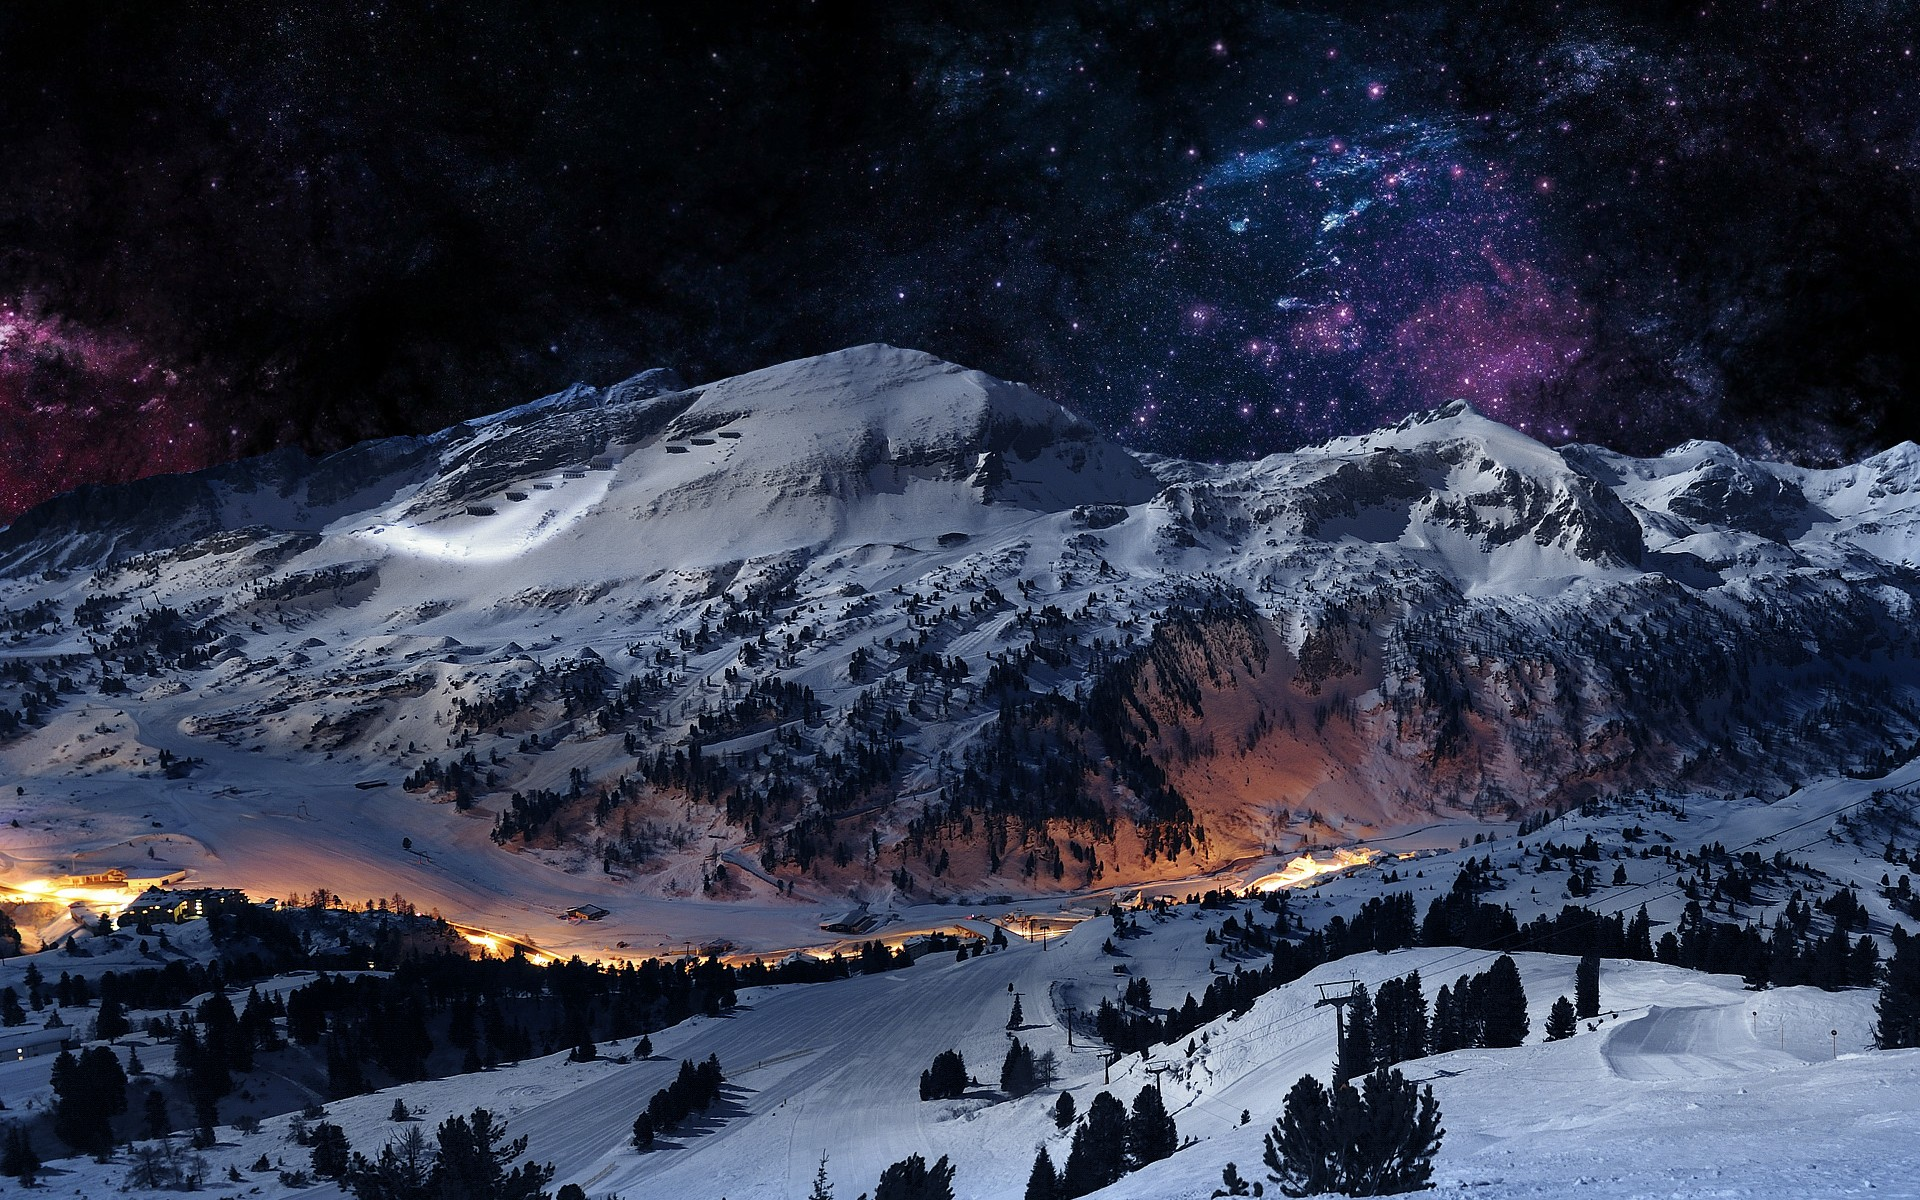 Wallpapers mountains landscapes winter digital art scene night 1920x1200